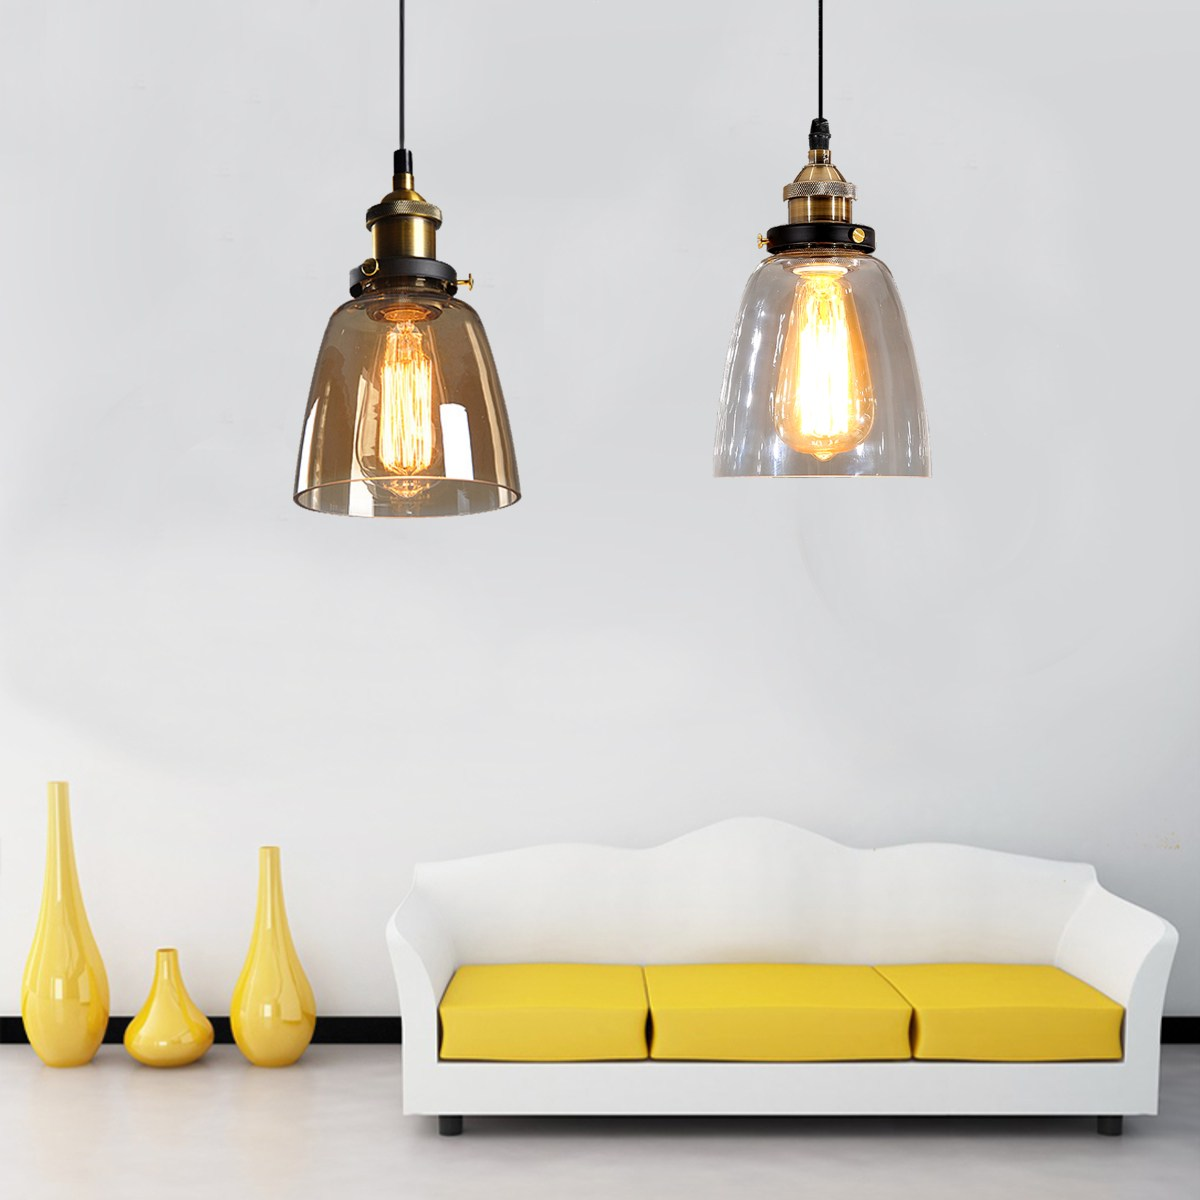 Retro Loft Glass Pendant Light Shade Hanging Industrial Lamp Clear Glass Home Restaurant Decoration High Quality